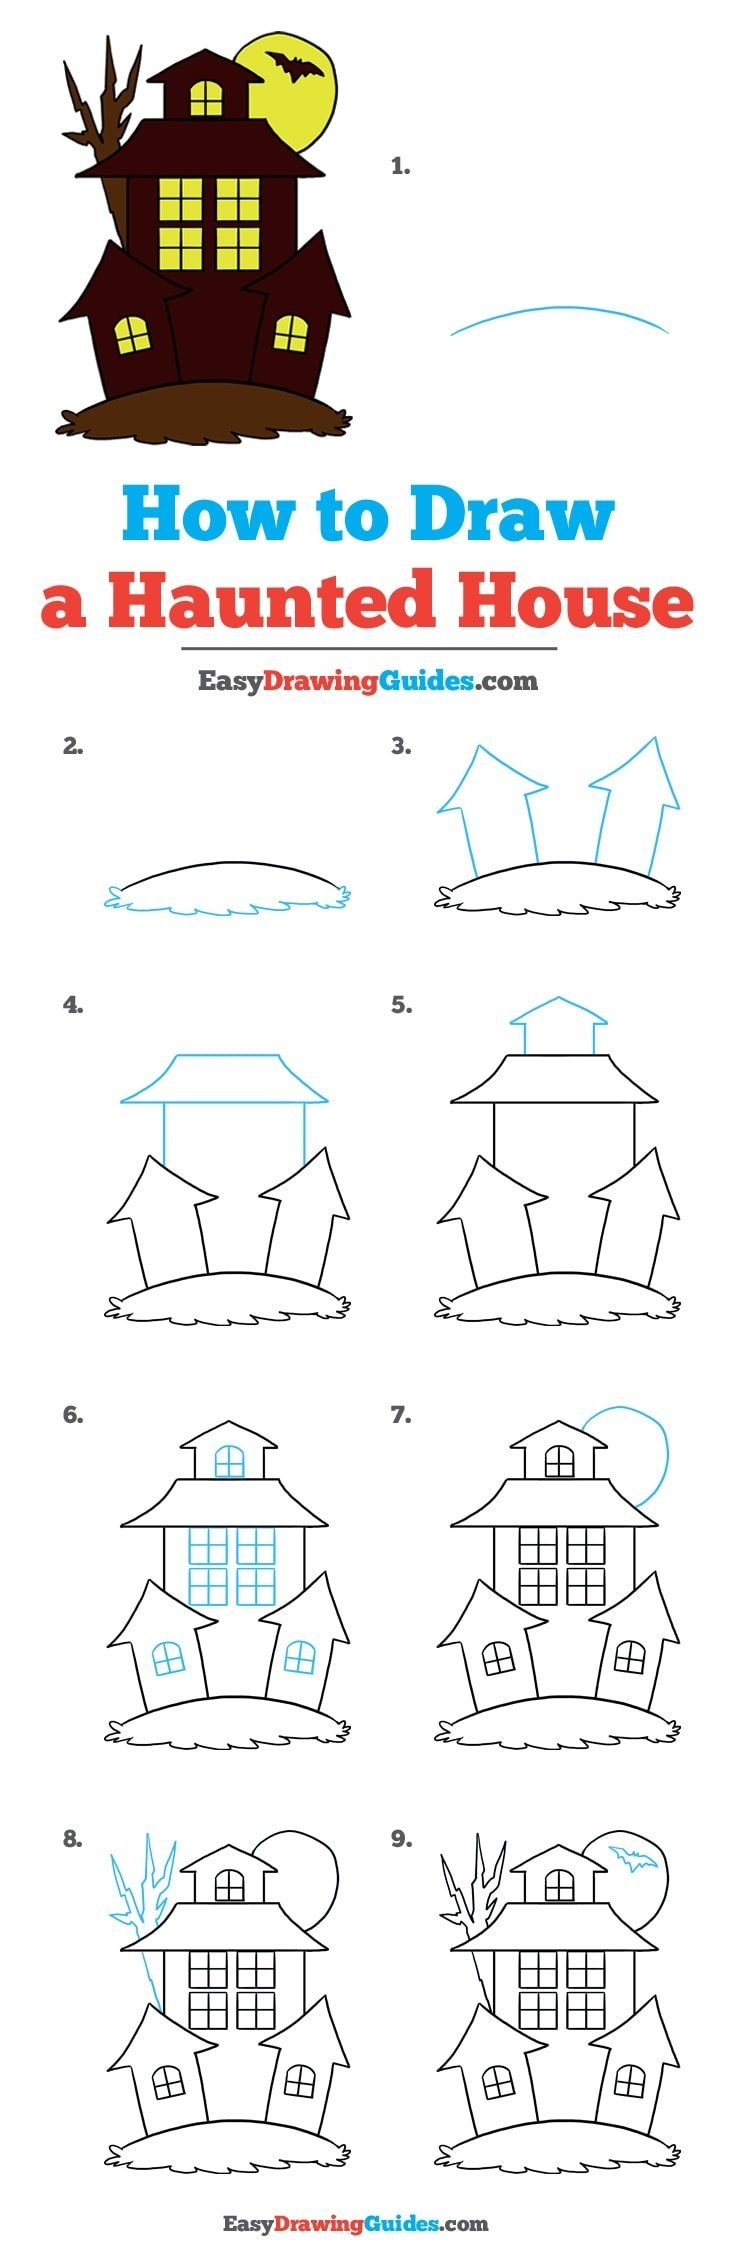 How to Draw Haunted House